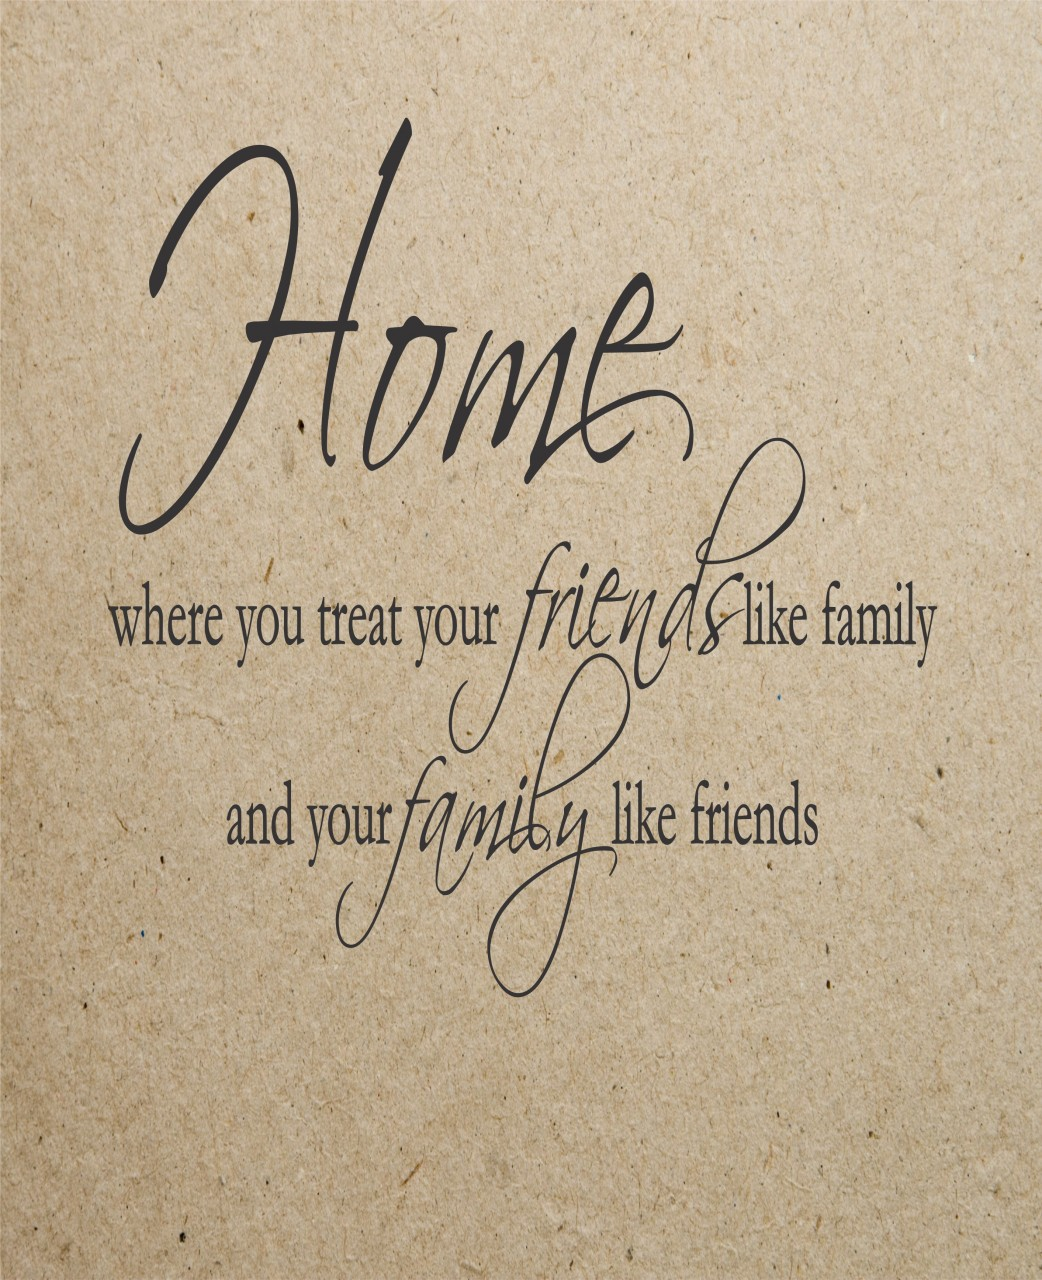 Friends Like Family Quotes. QuotesGram